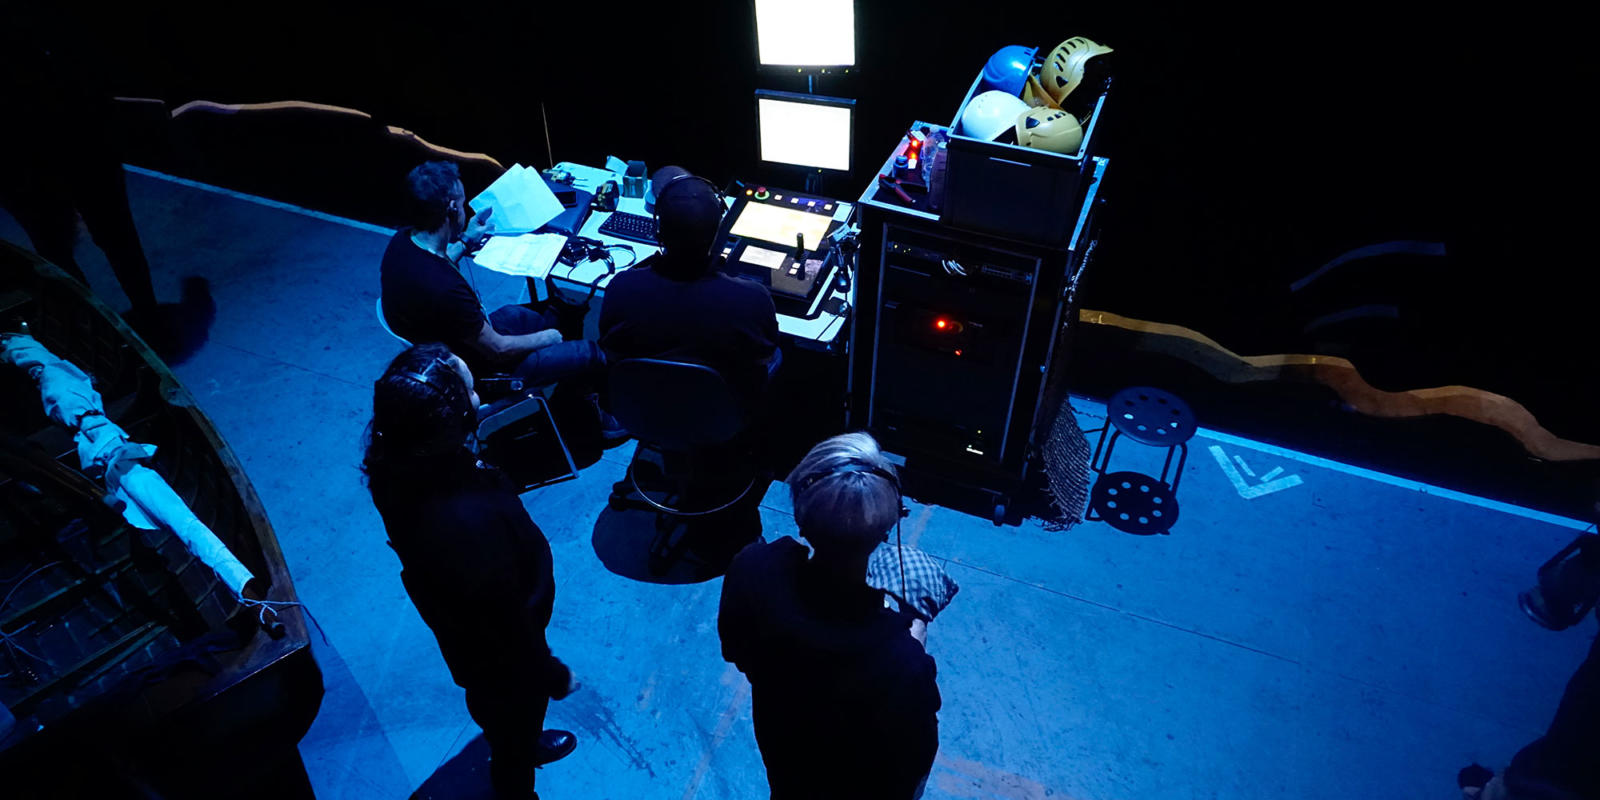 Members of the stage management team